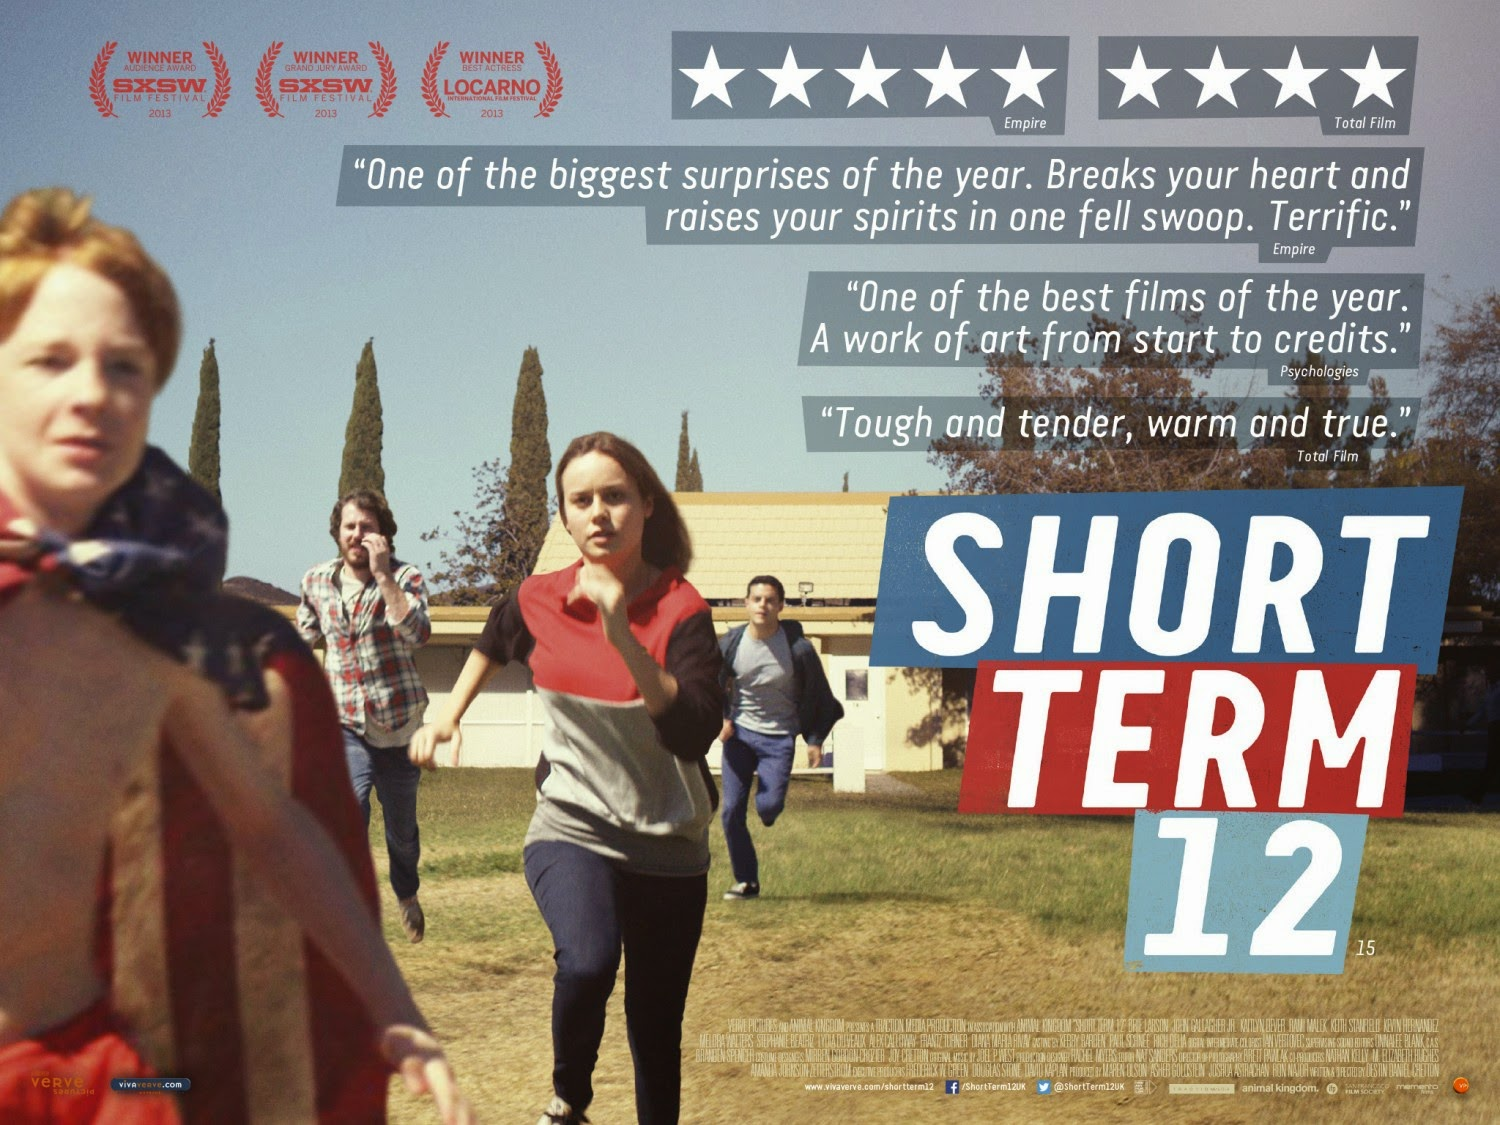 Short Term 12 as one of the biggest Oscar snubs